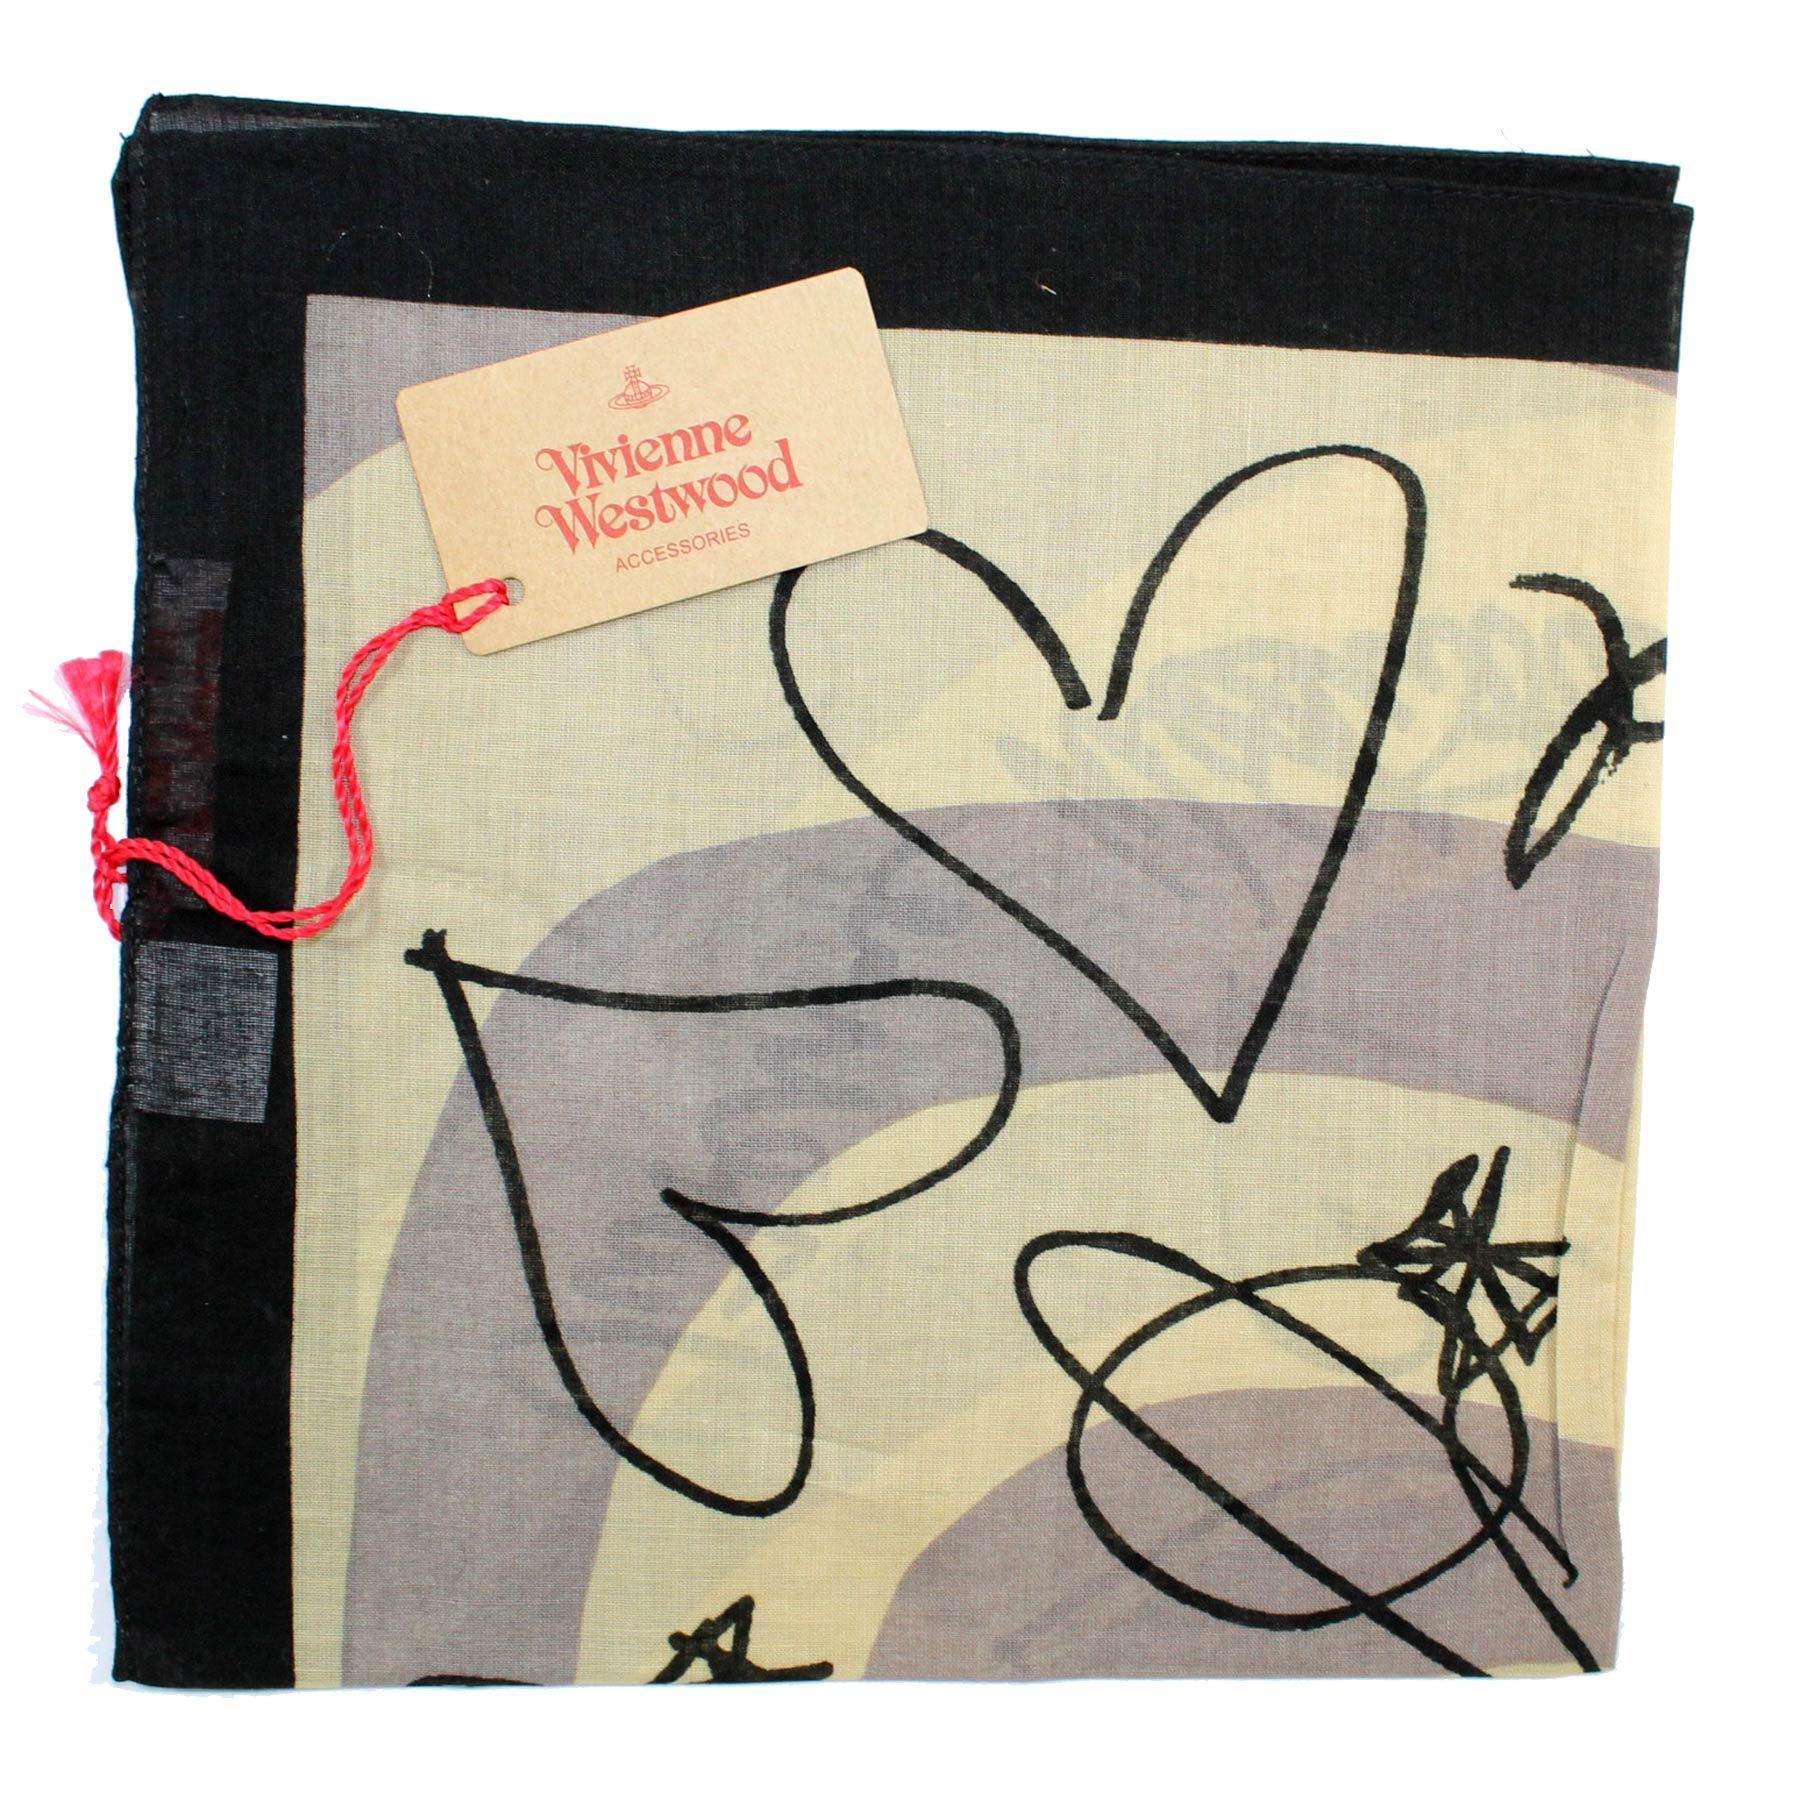 Vivienne Westwood Small Scarf Hearts Design Cotton FINAL SALE